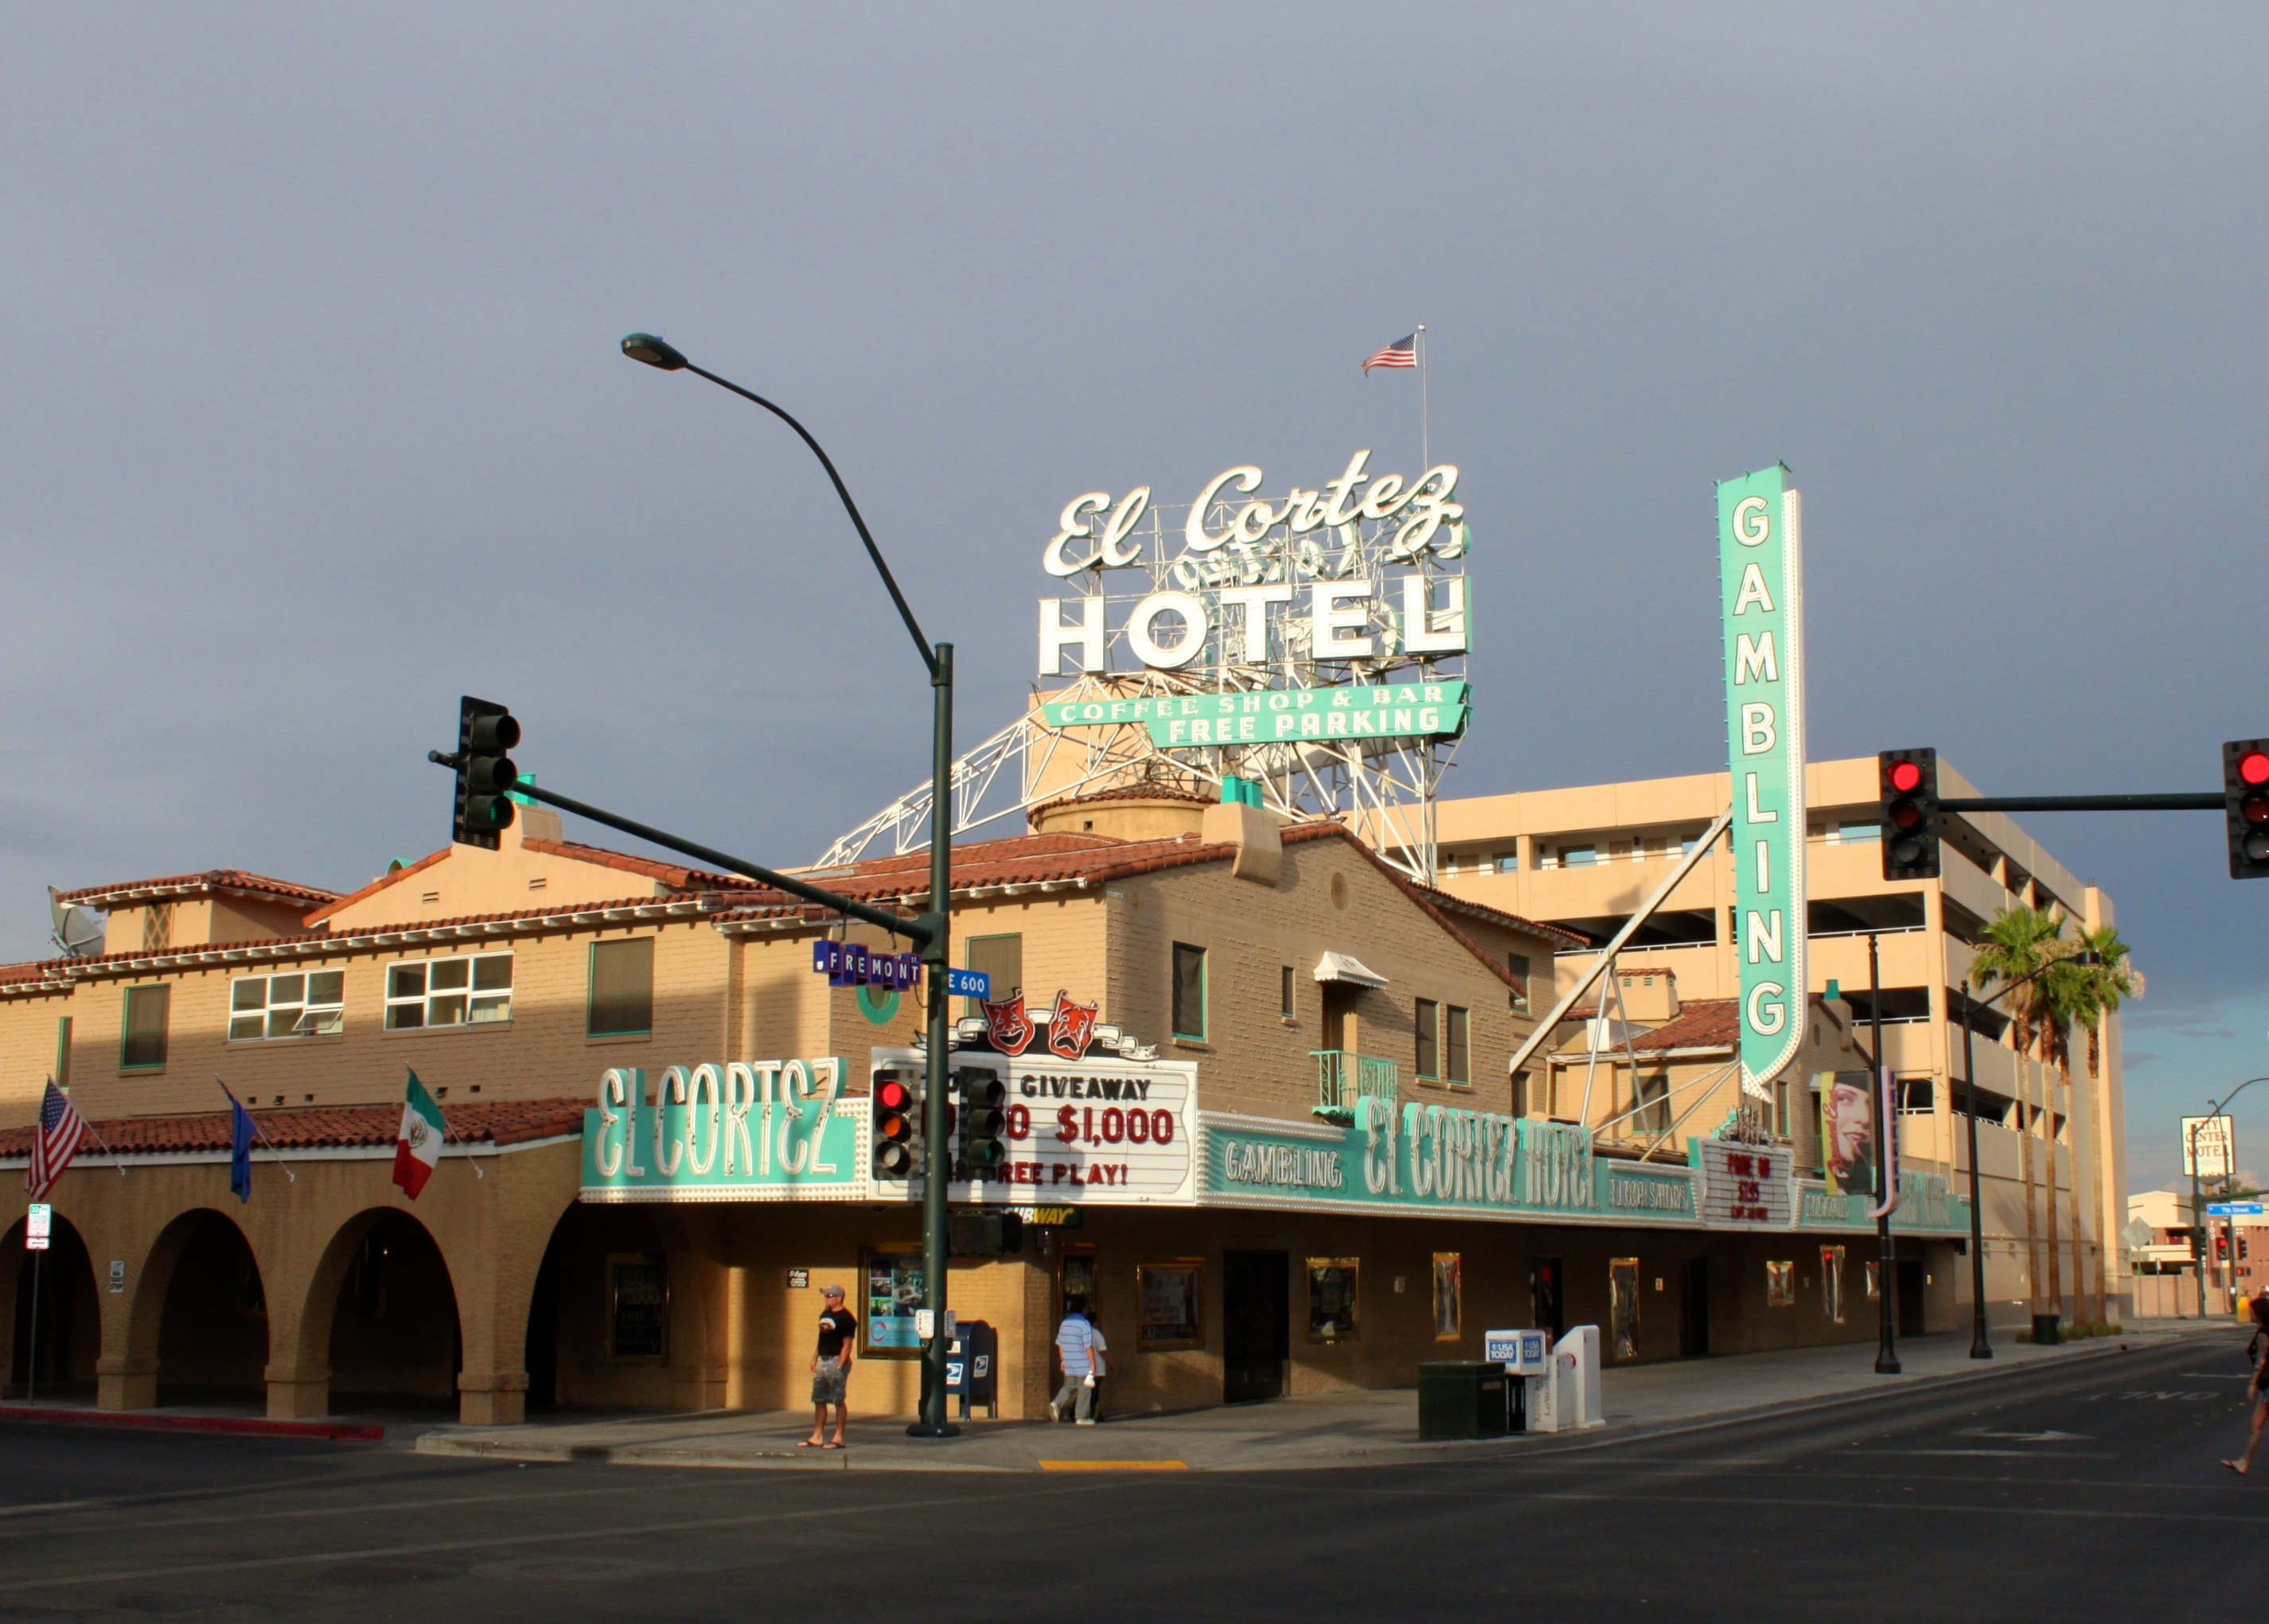 On This Date February 22 2013 The El Cortez was placed